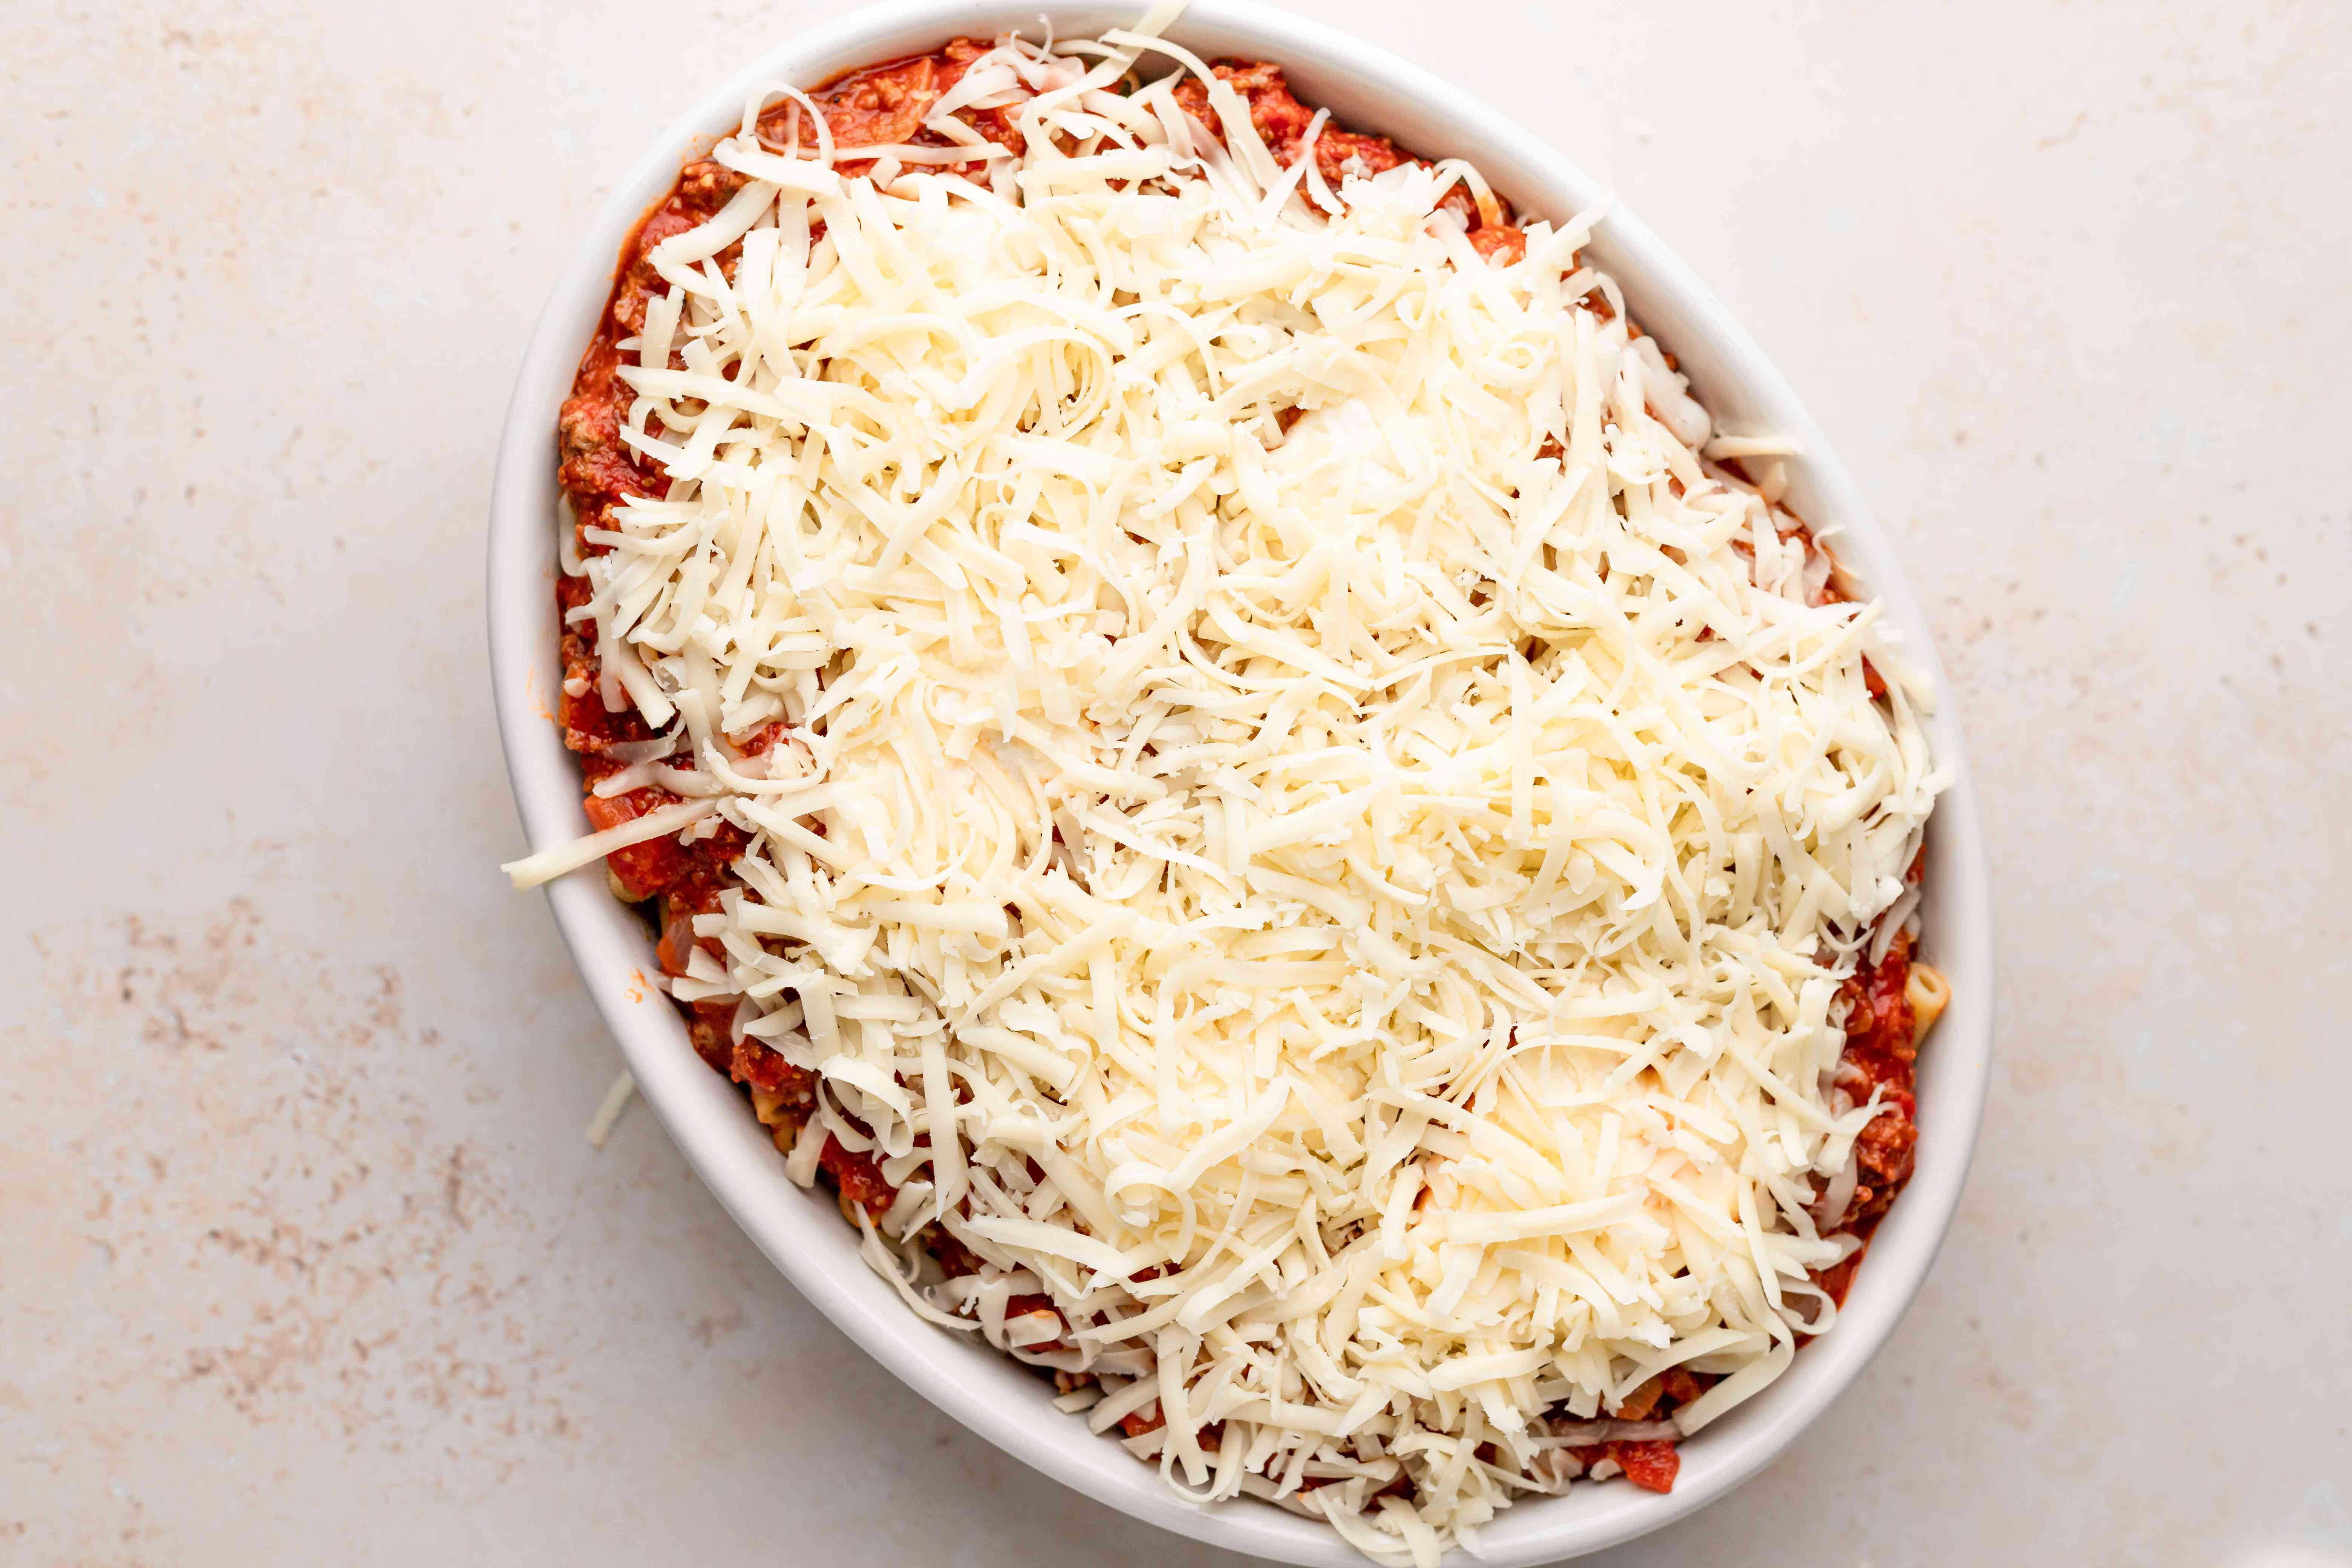 Shredded cheese topping a pasta bake.